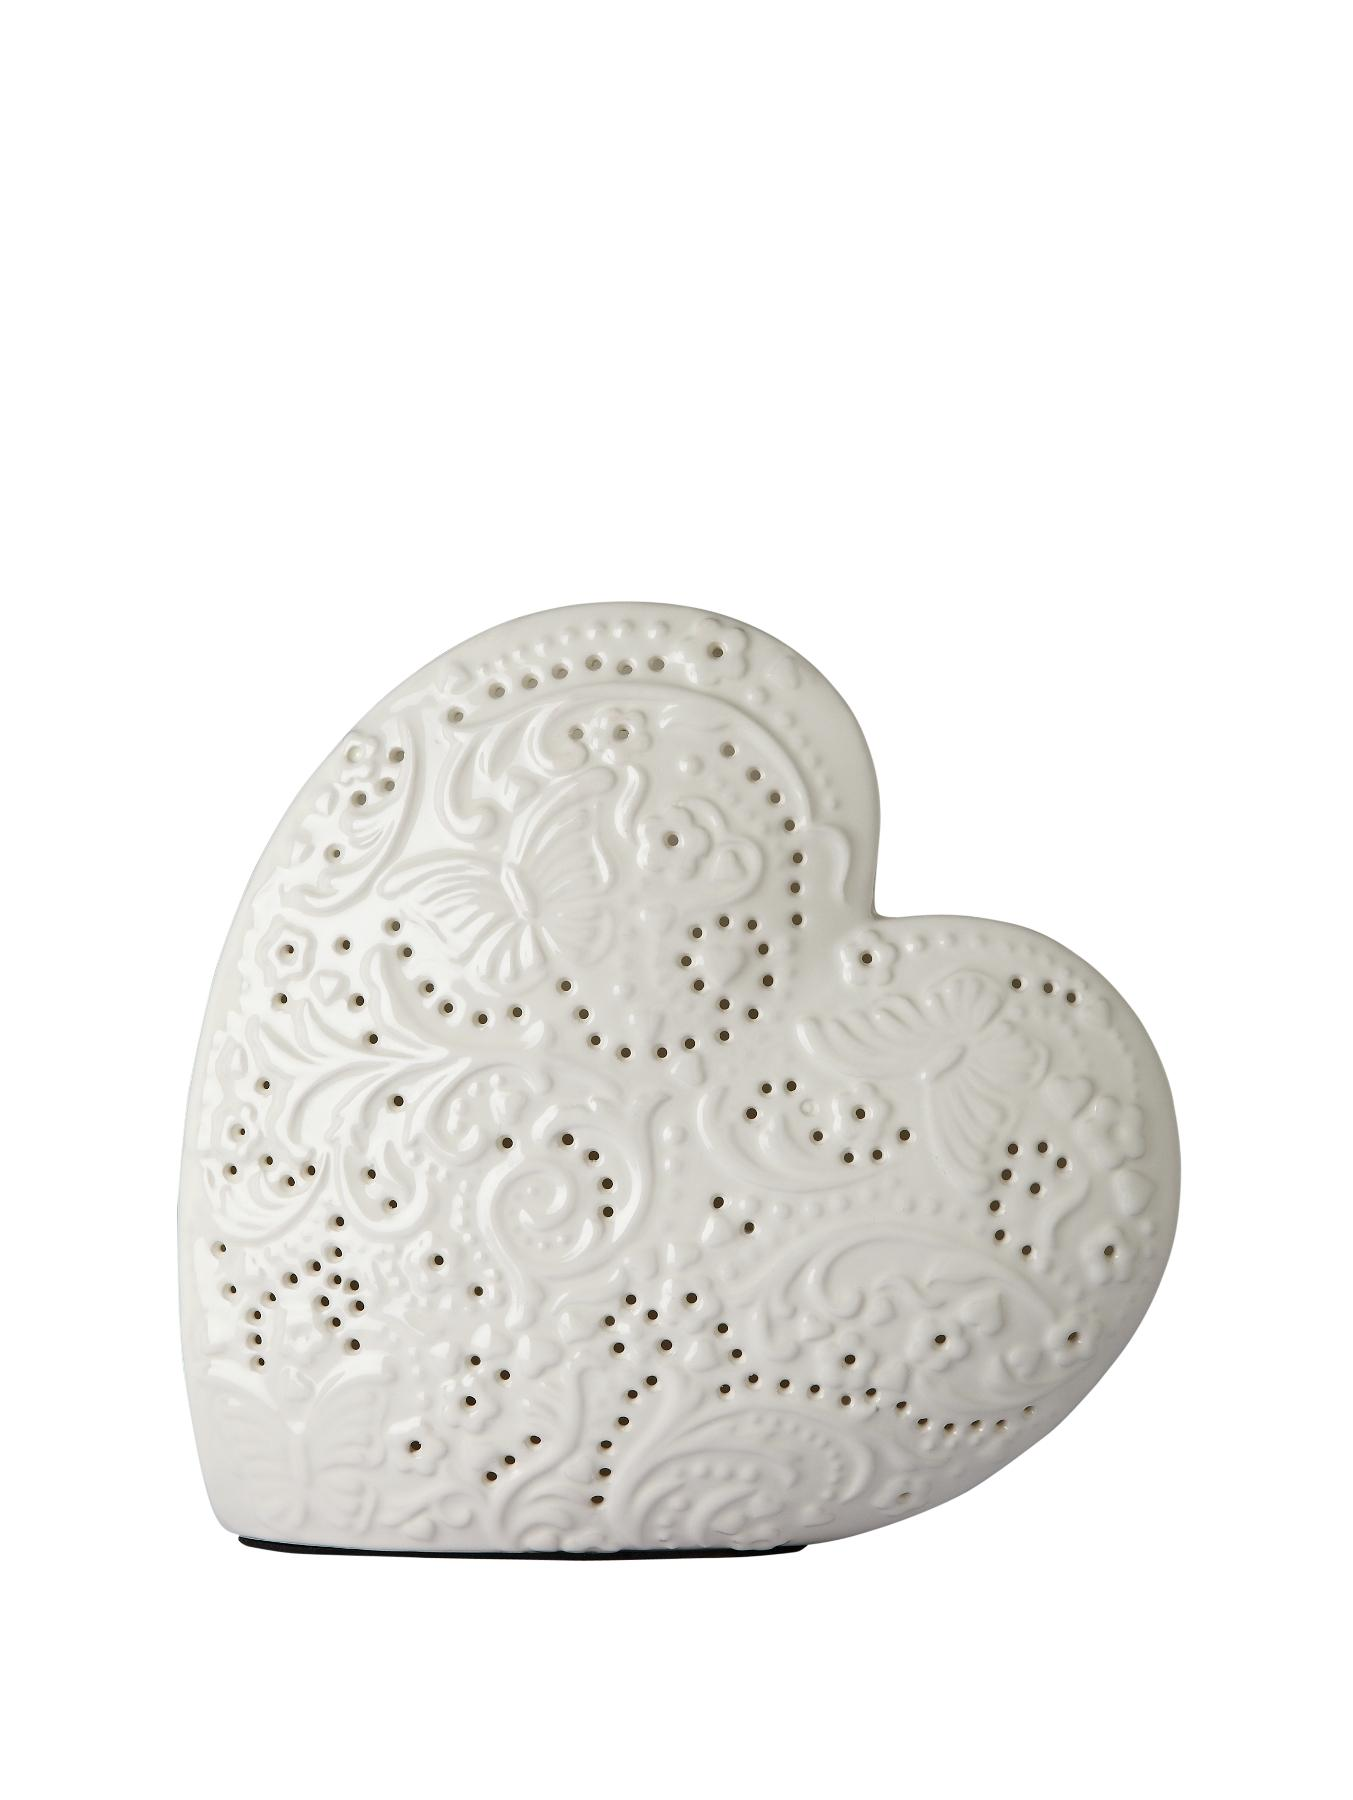 Heart Shaped Table Lamp